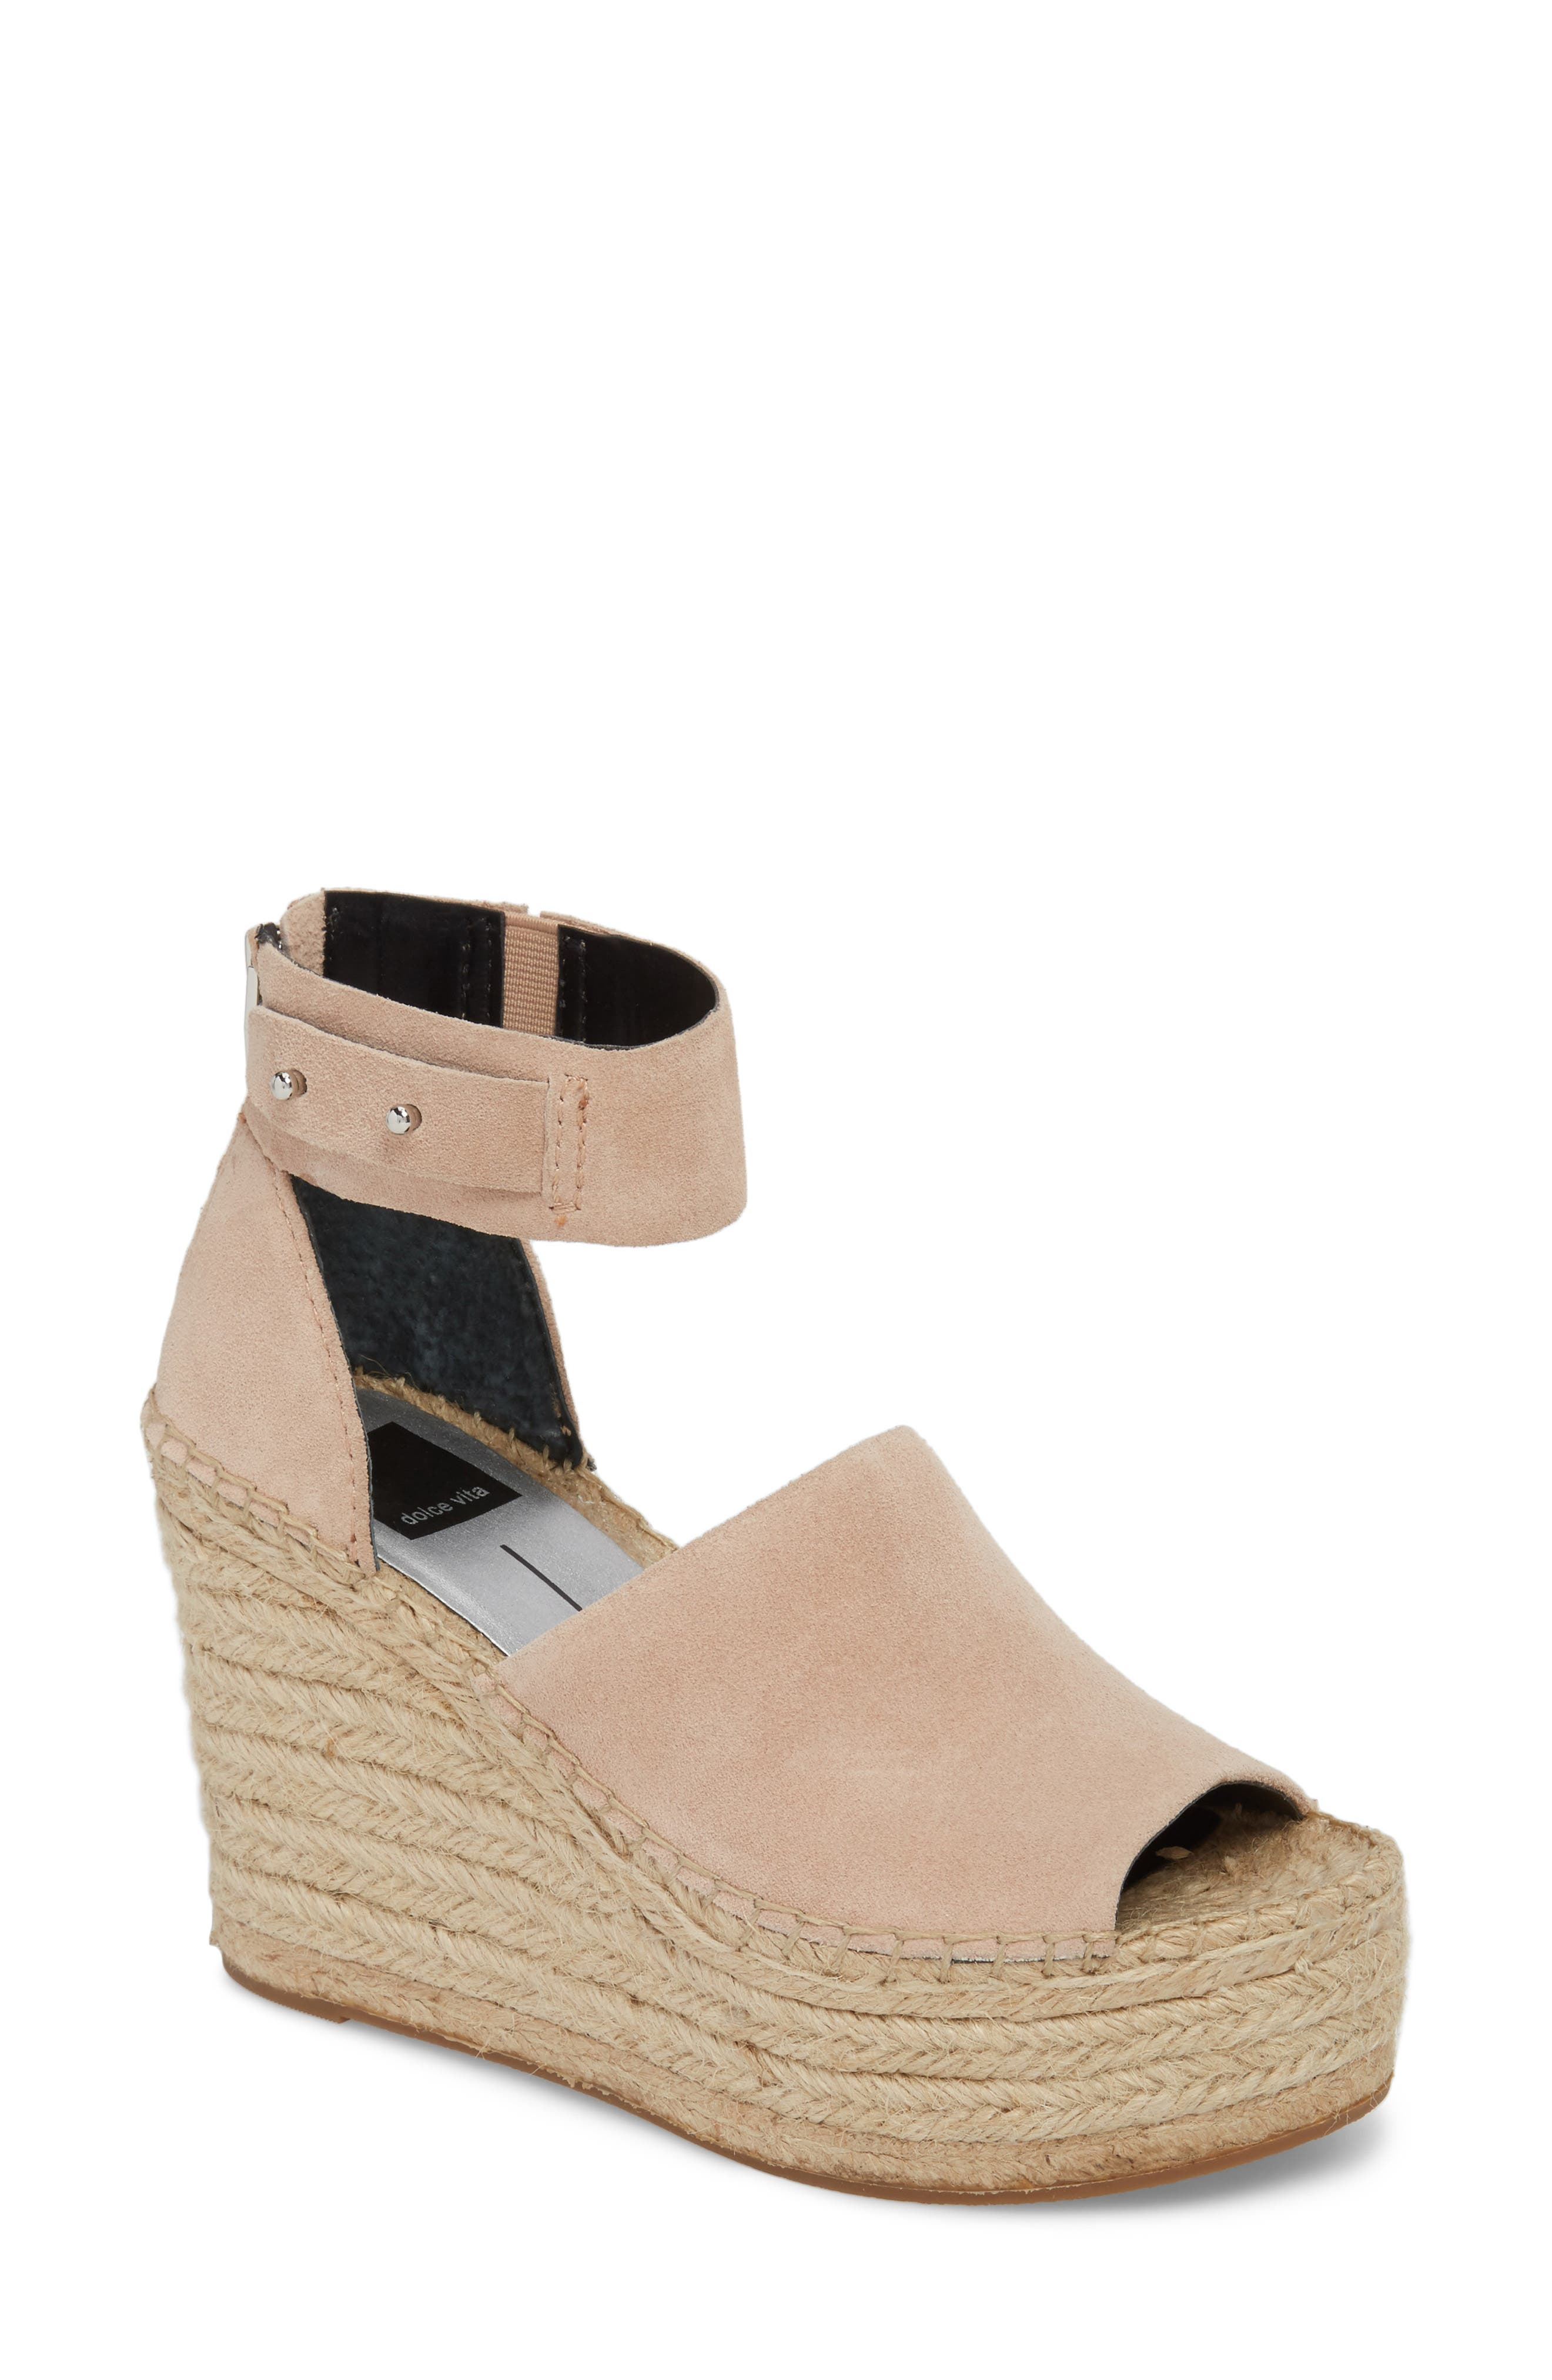 DOLCE VITA, Straw Wedge Espadrille Sandal, Main thumbnail 1, color, BLUSH